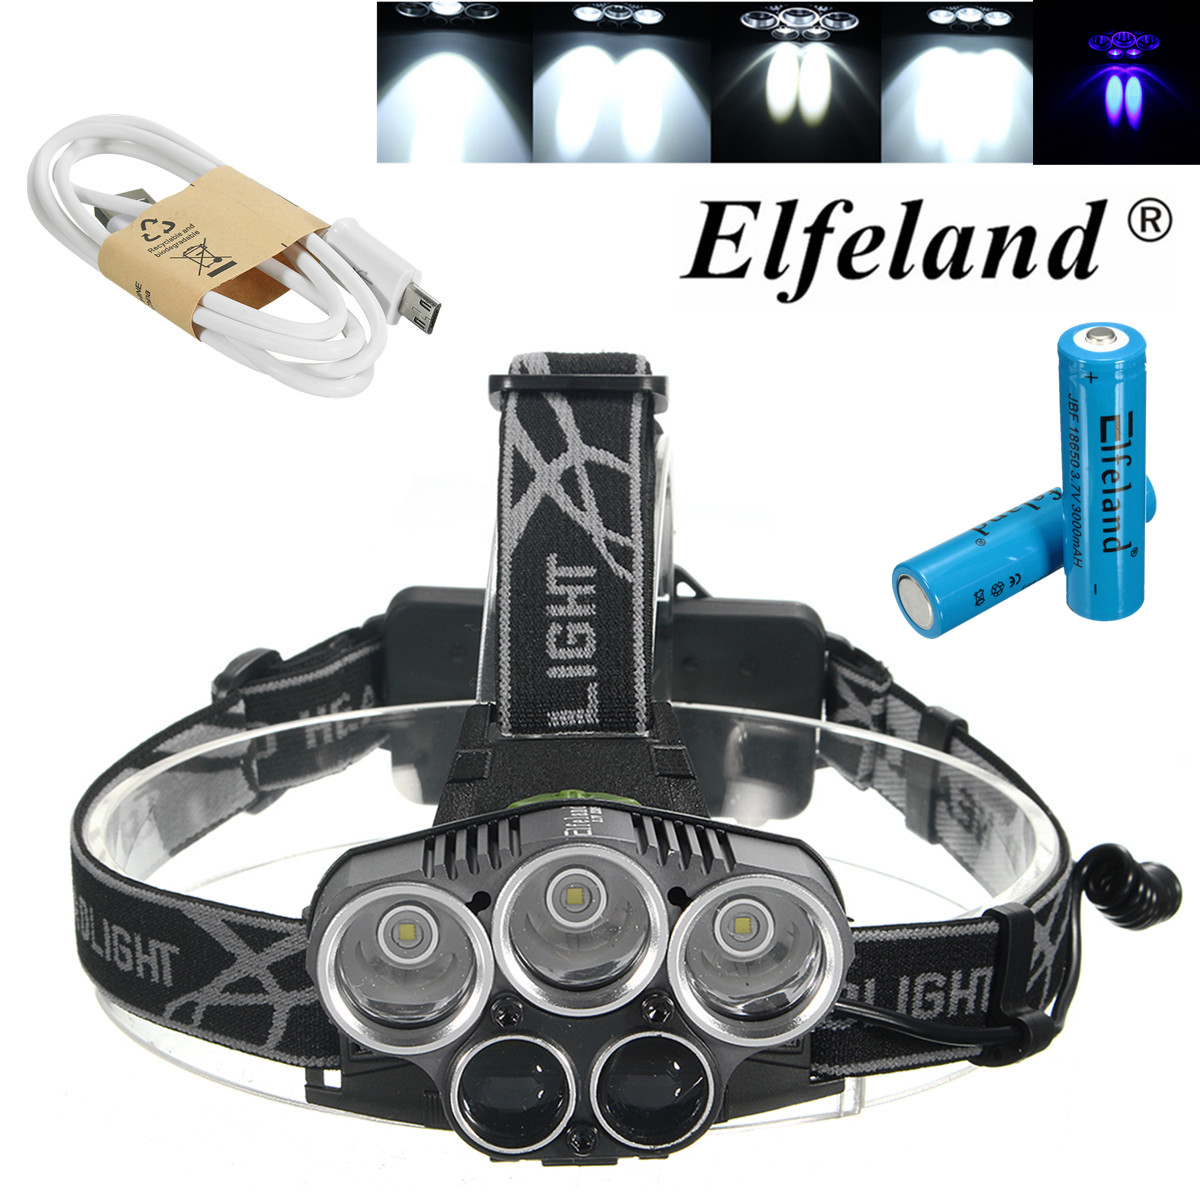 Elfeland T6 LED Rechargeable Headlamp Headlight Flashlight Torch Waterproof 6 Modes with Rechargeable Batteries and USB Cable For Hiking Camping Riding Fishing